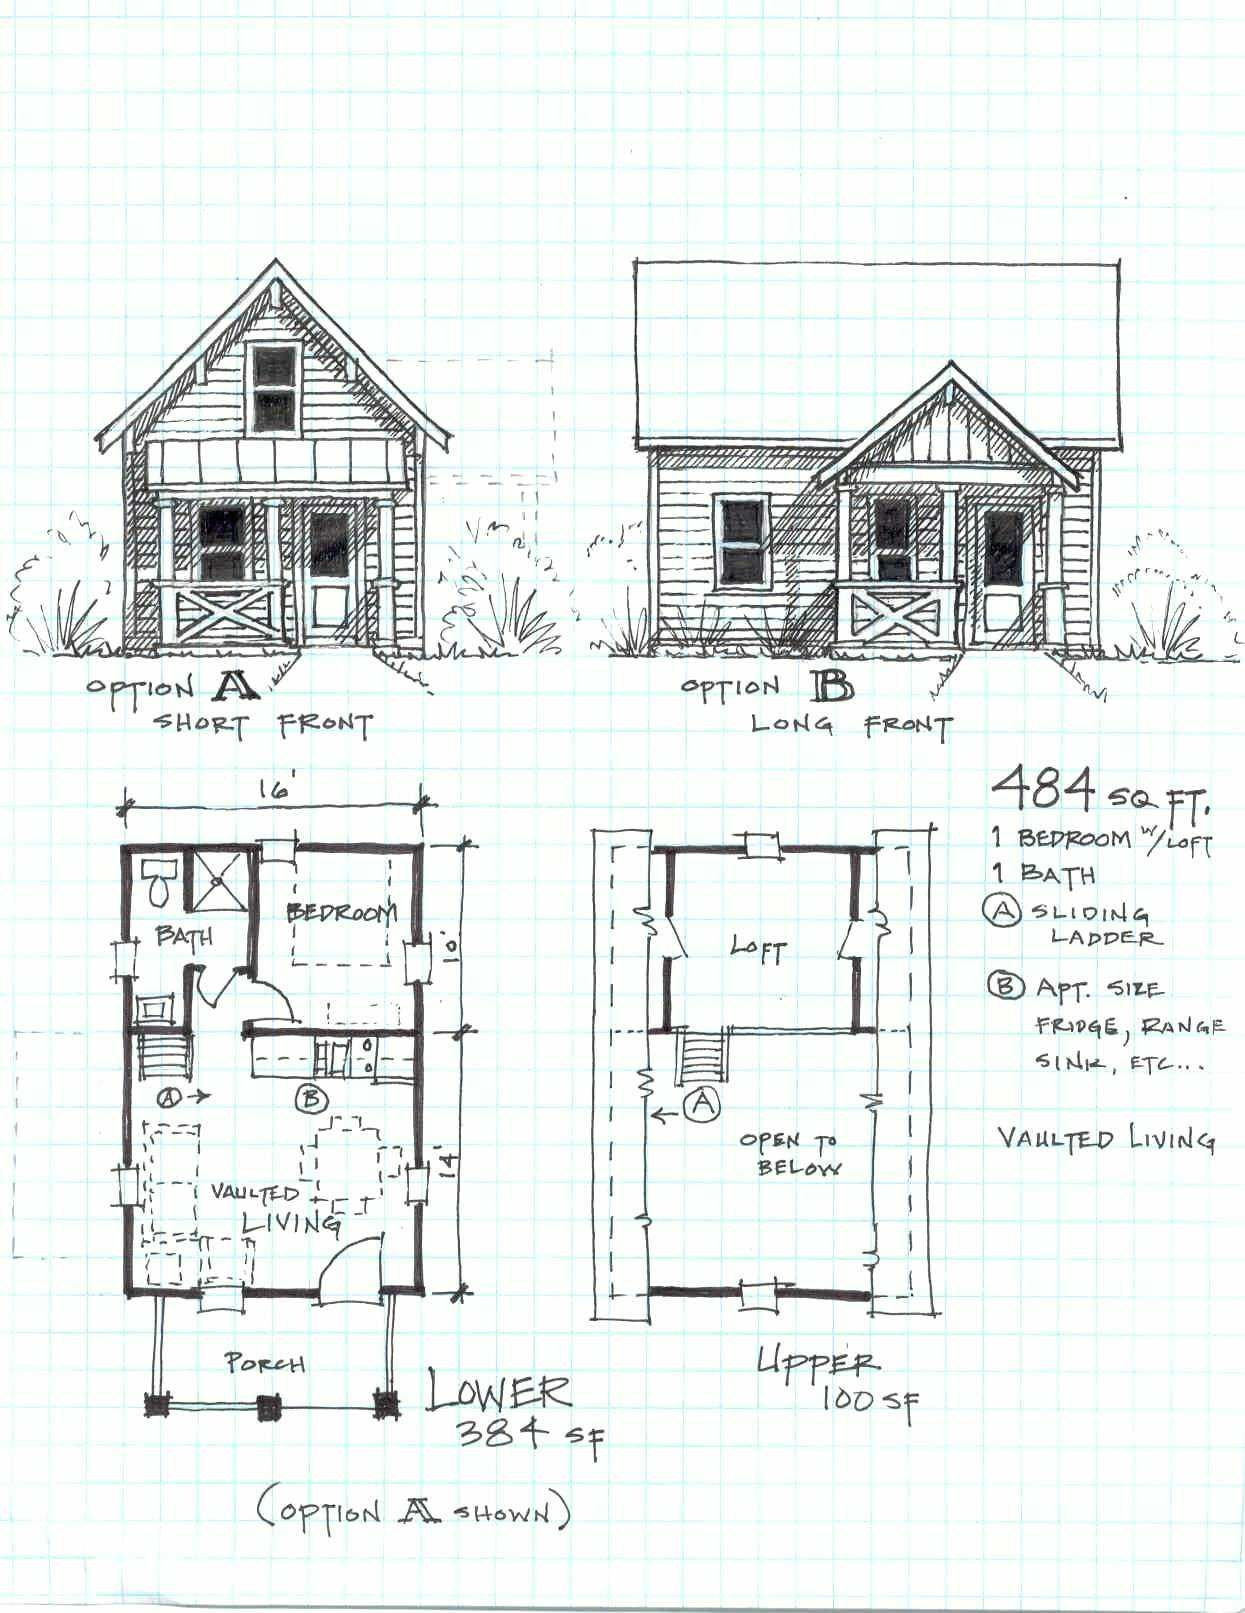 Traditional Wrap Around Porch Farmhouse Luxury Traditional Wrap Around Porch Farmhouse Hous Small Cabin Plans Small House Floor Plans Cabin Plans With Loft